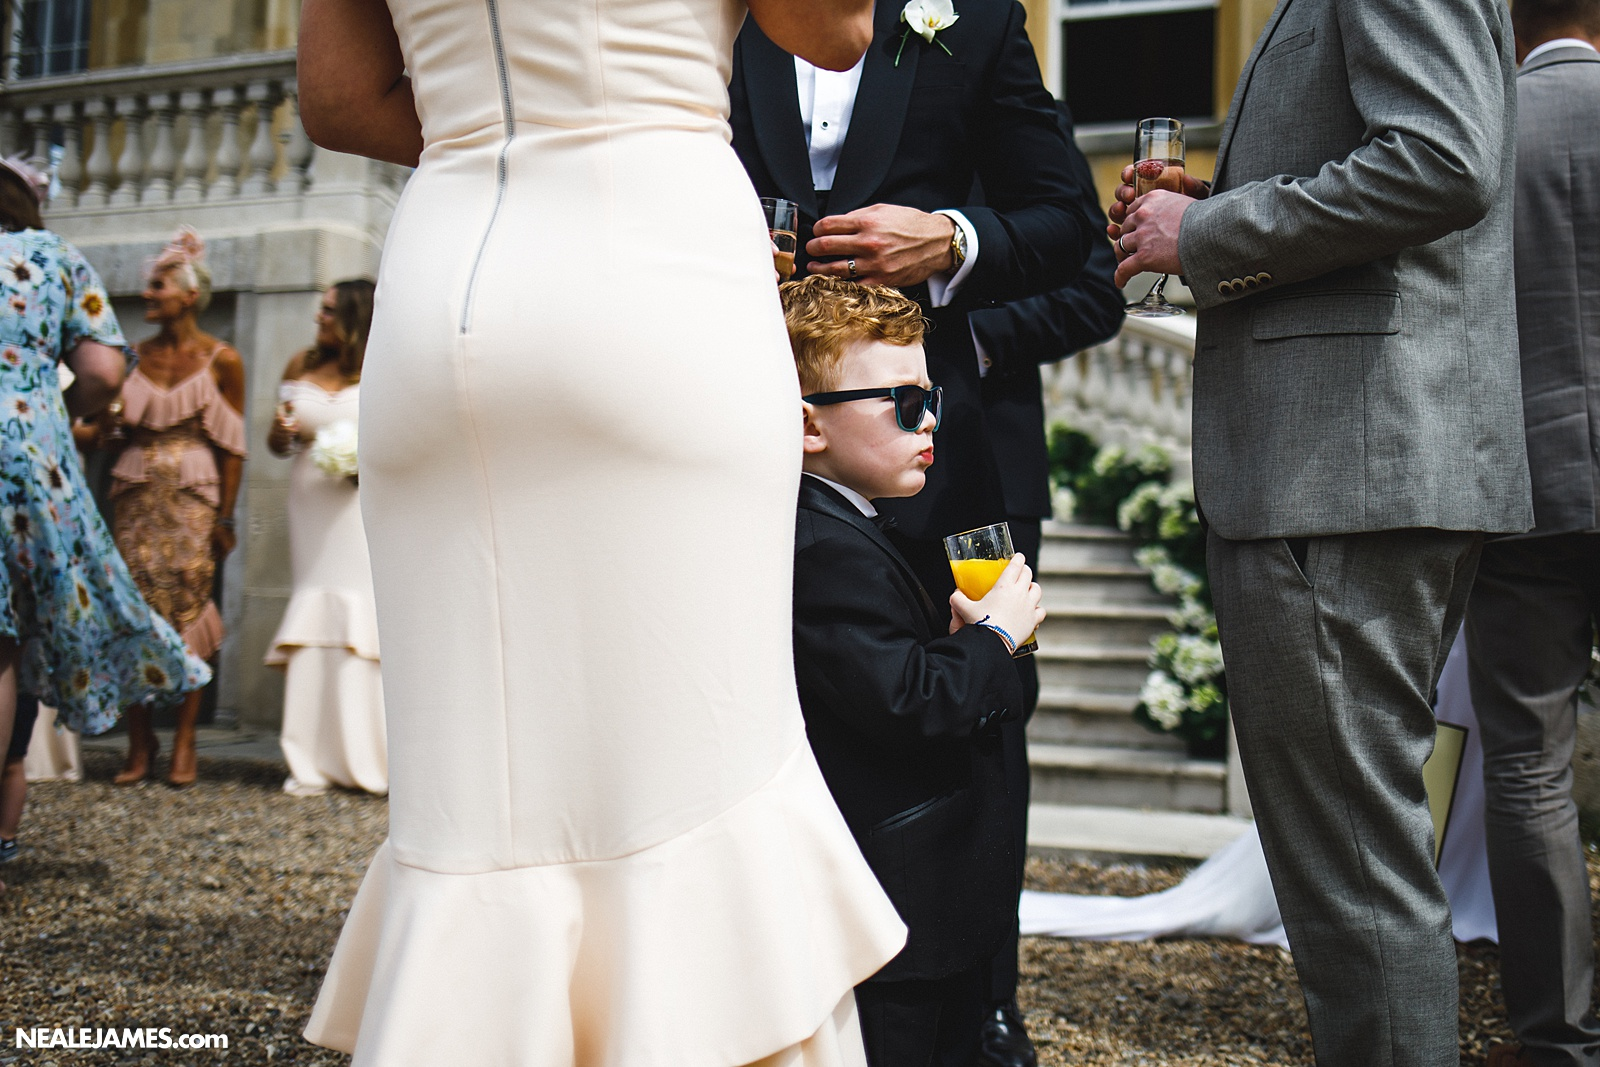 Colour photo of a child at wedding being cool